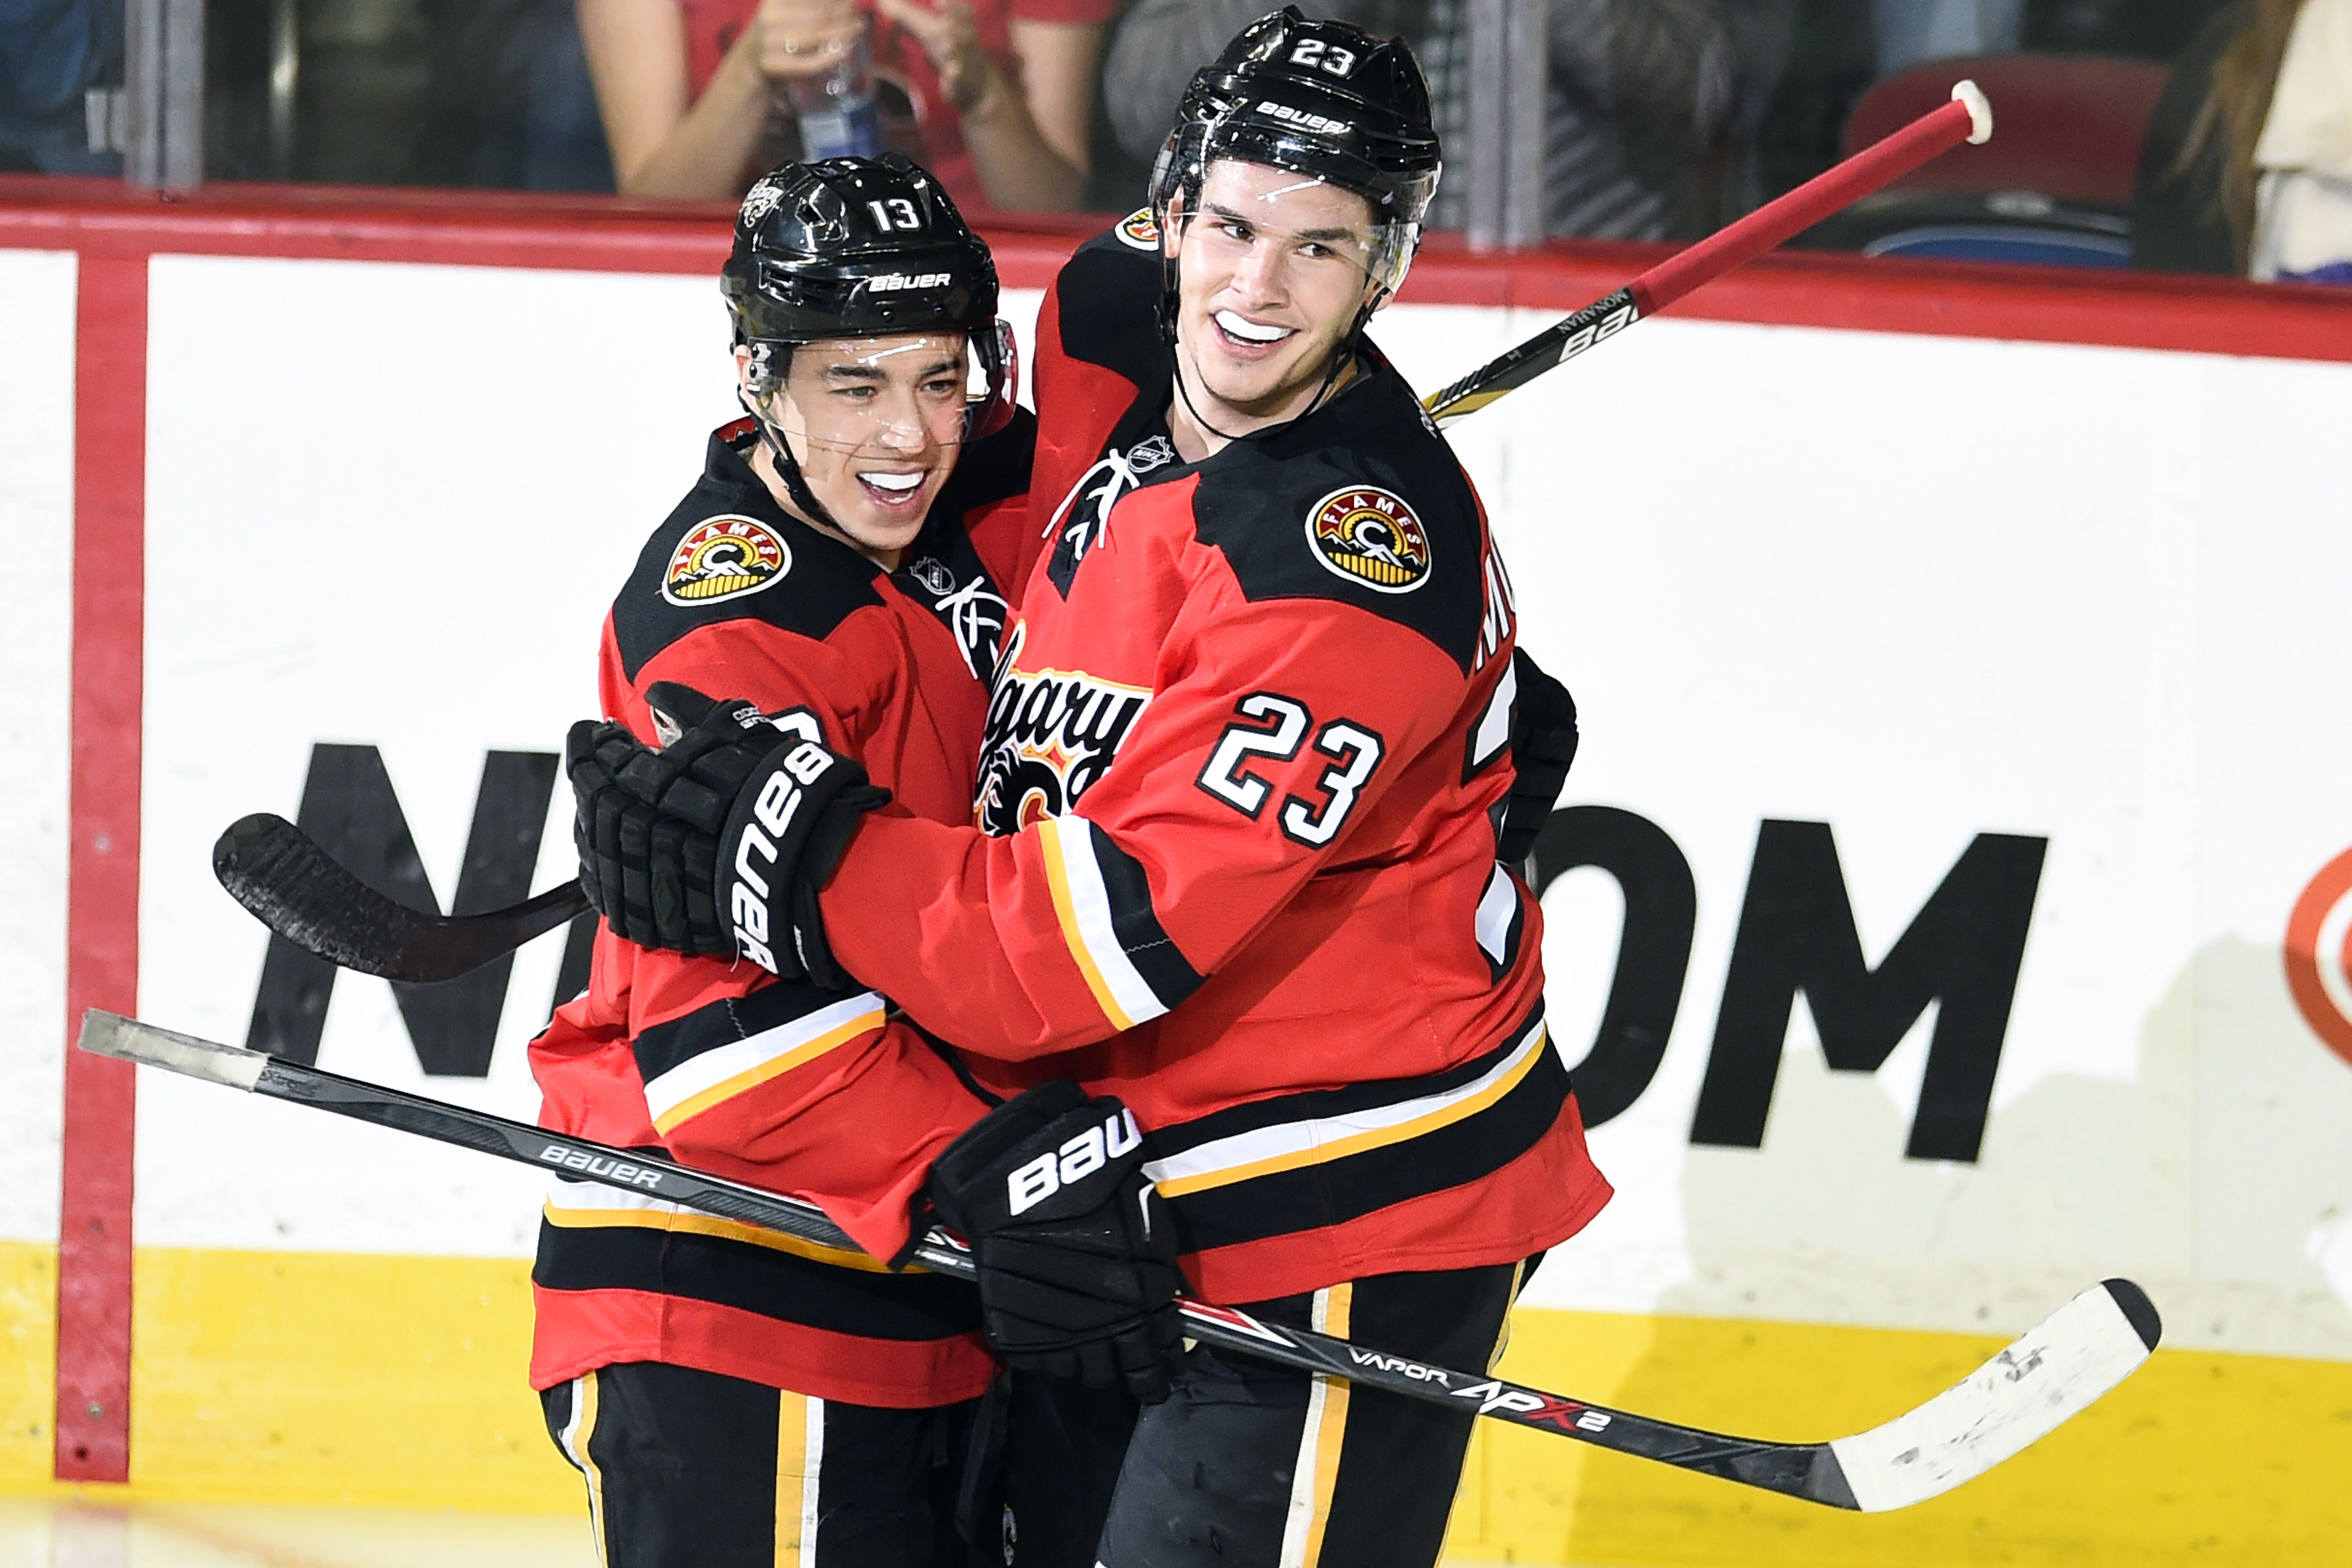 What a lovely photo of two lovely young men who are both under 25 and good at hockey.